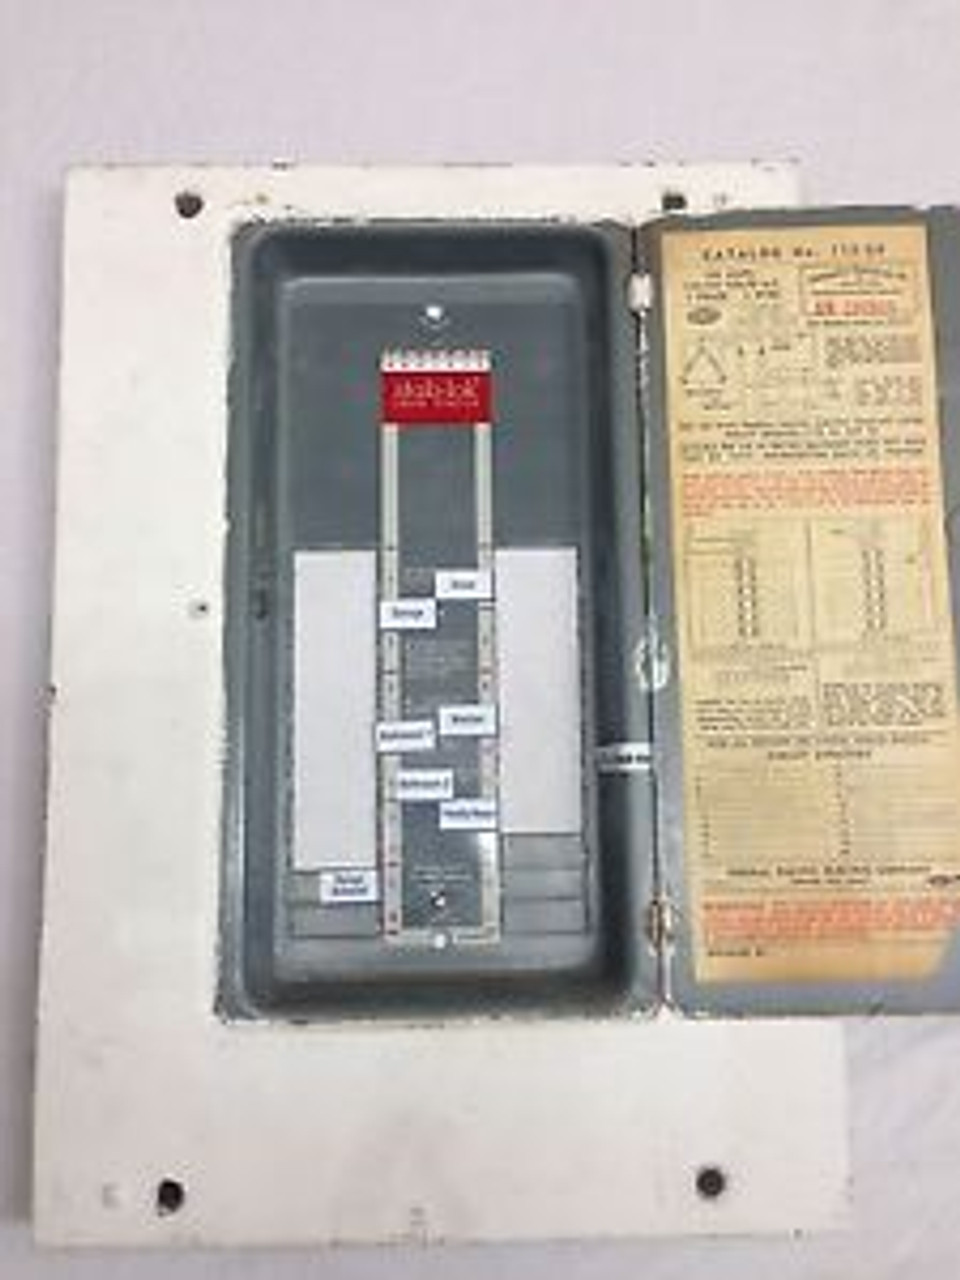 federal pacific 112-20 fpe 100 amp electric panel cover fuse box stab-lok -  spw industrial  spw industrial